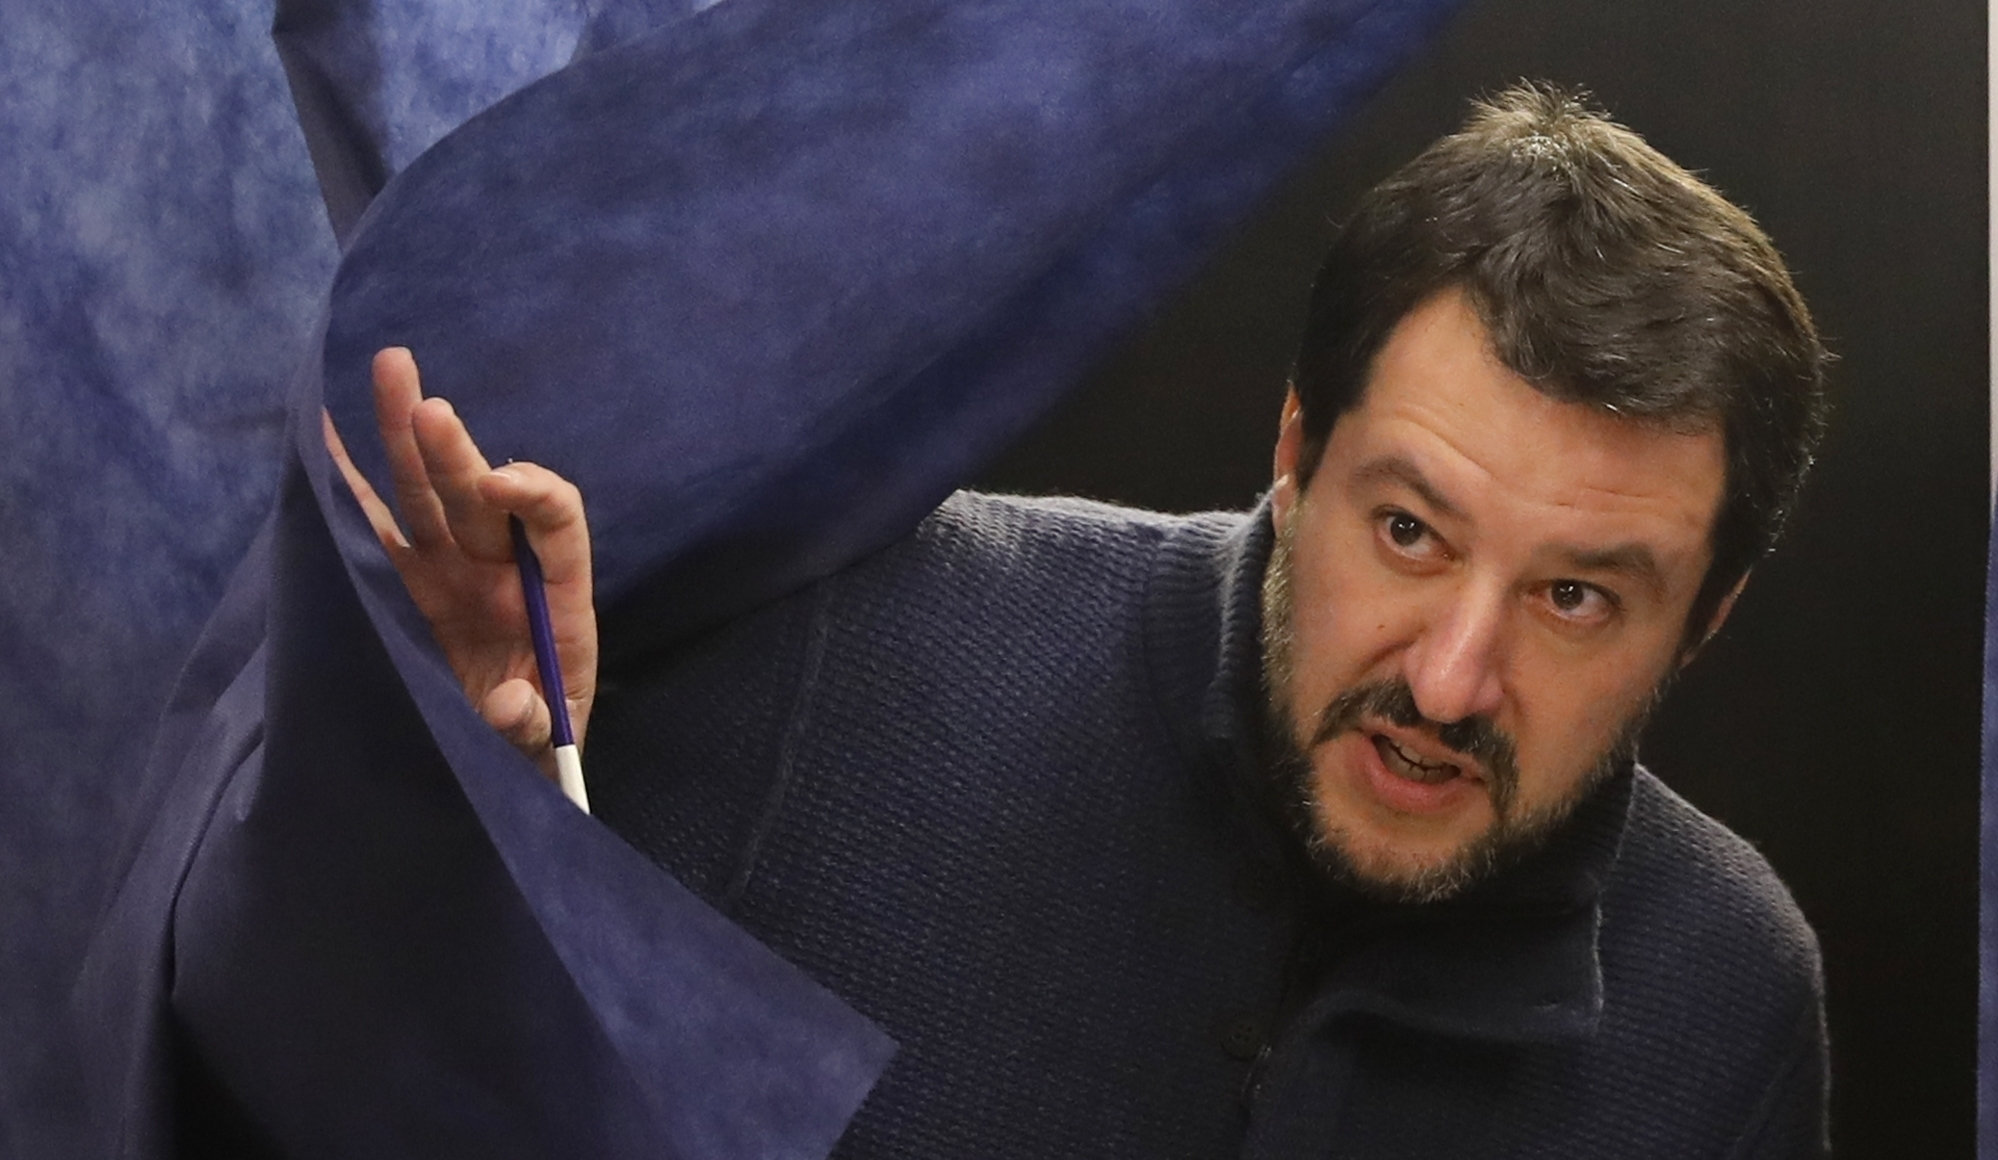 Leader of the League party, Matteo Salvini, gets out of a voting booth at a polling station in Milan. Photograph: AP